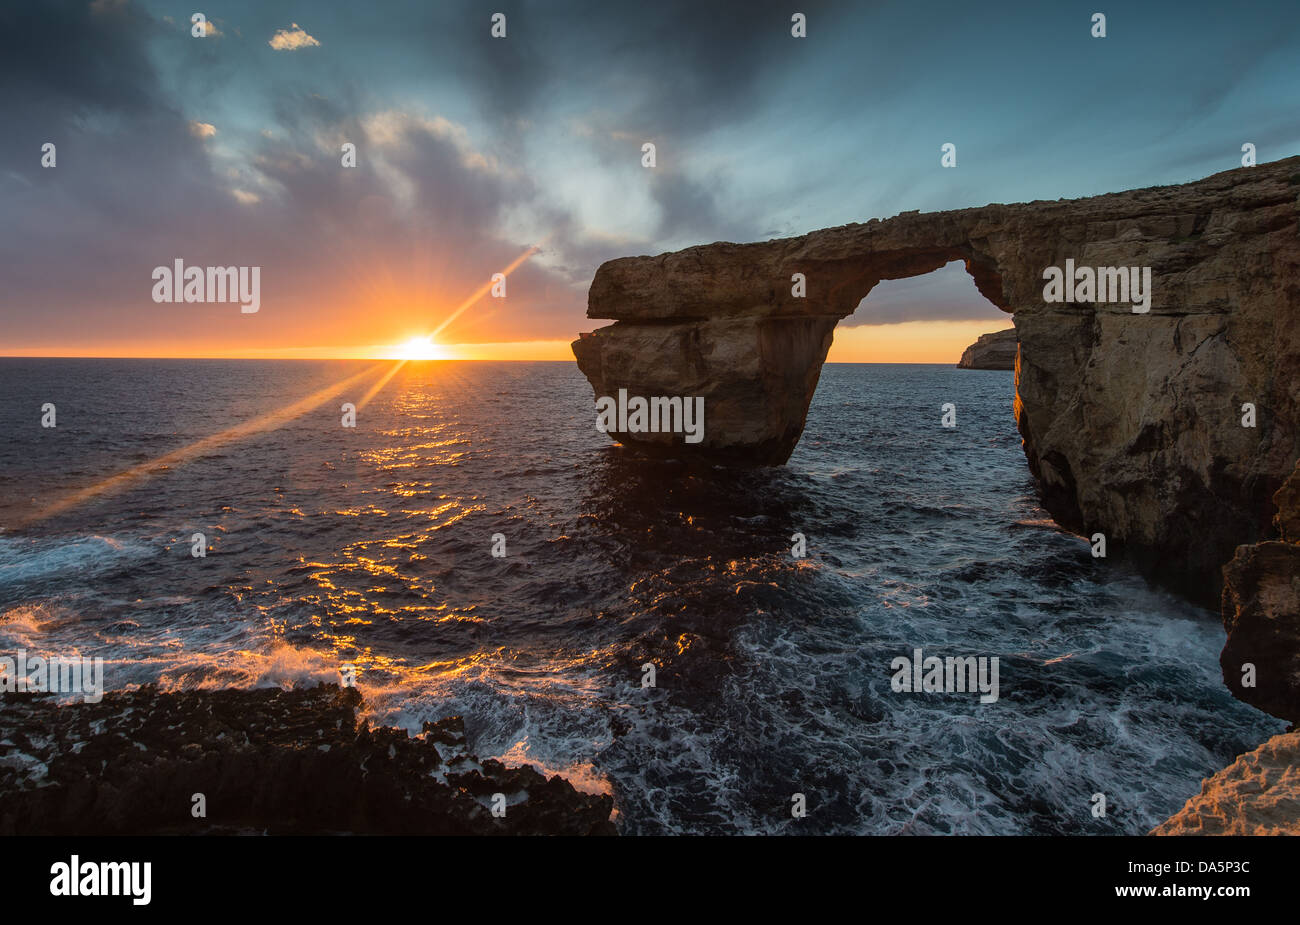 Azure Window, Gozo, Malta sunset - Stock Image